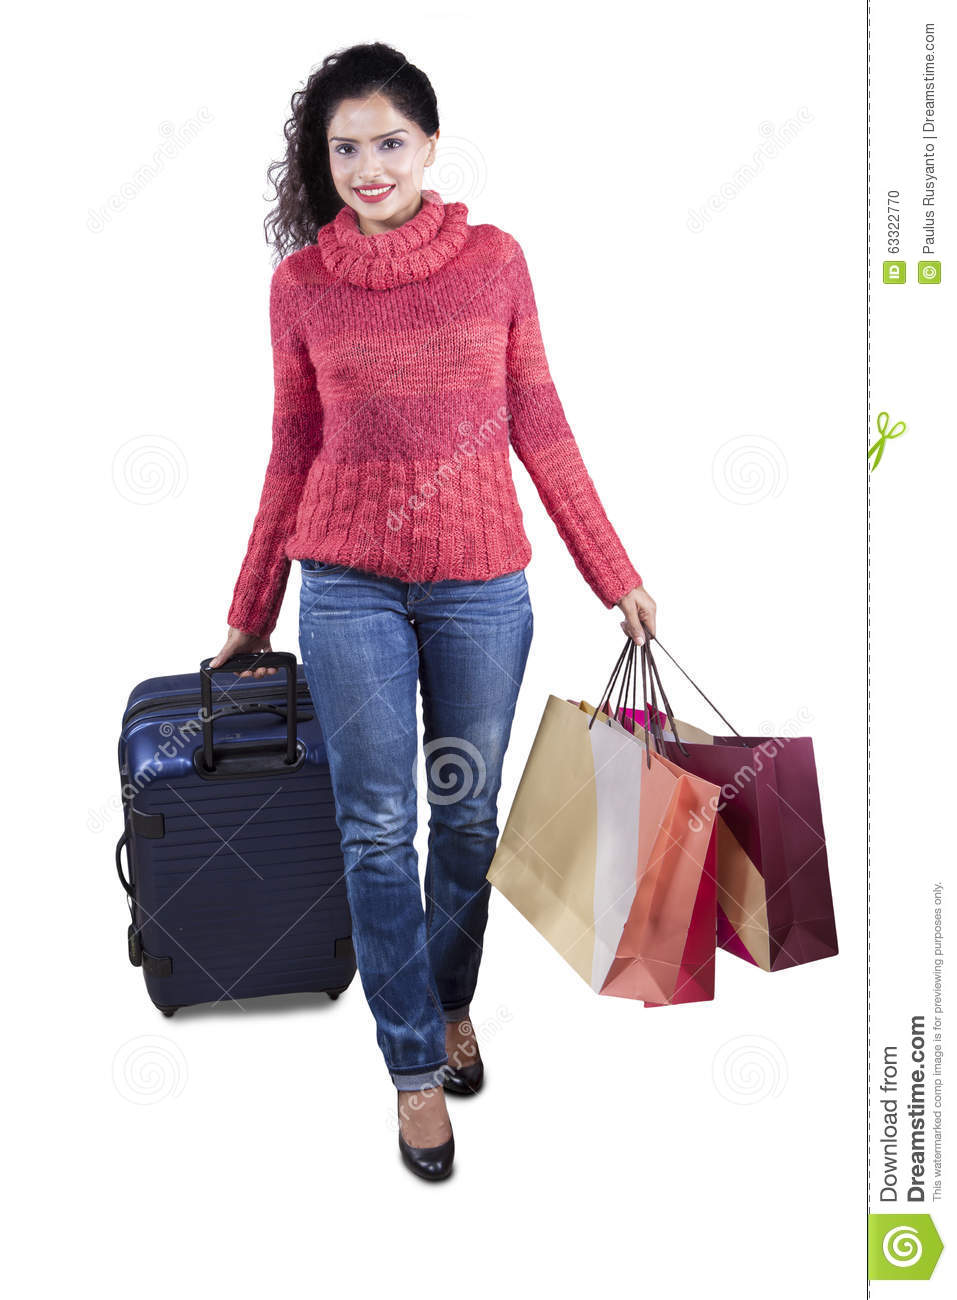 Wonderful Young Woman Wearing Cap And Coat Holding Shopping Bags Stock Photo